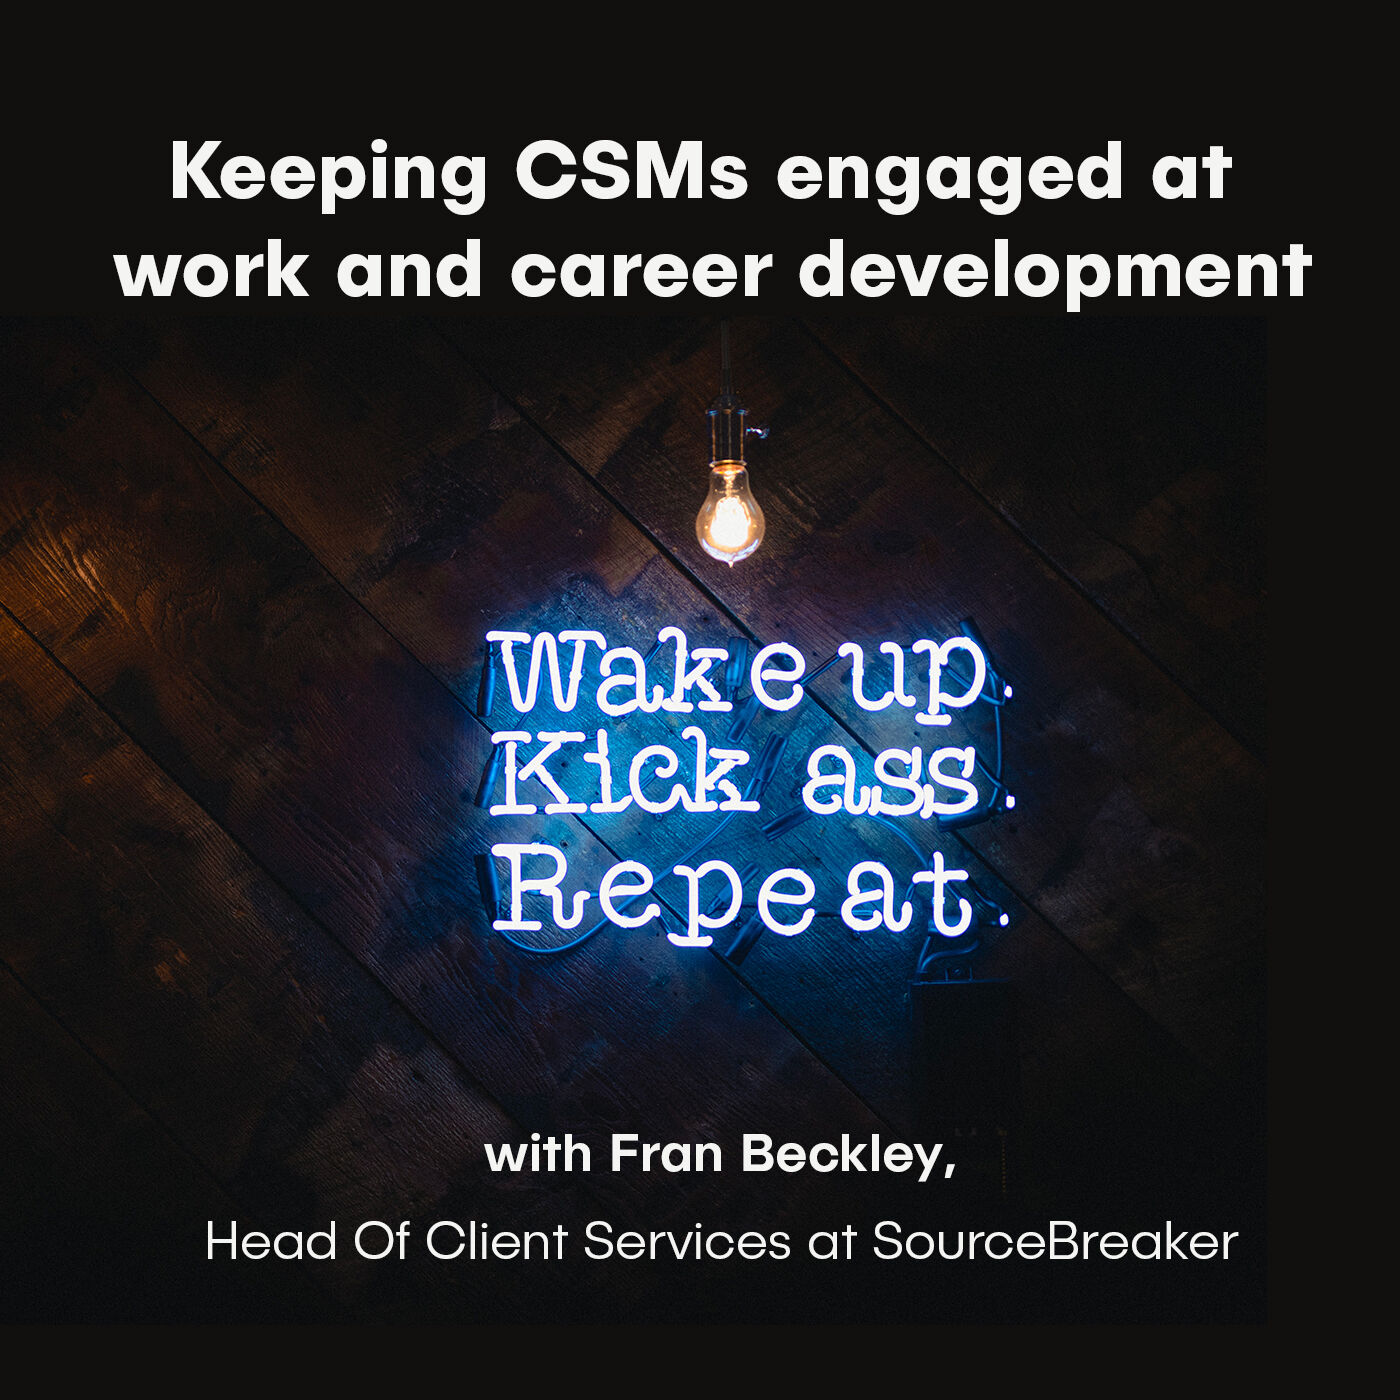 Fran Beckley, Head of Client Services at SourceBreaker - Keeping CSMs engaged at work and career development